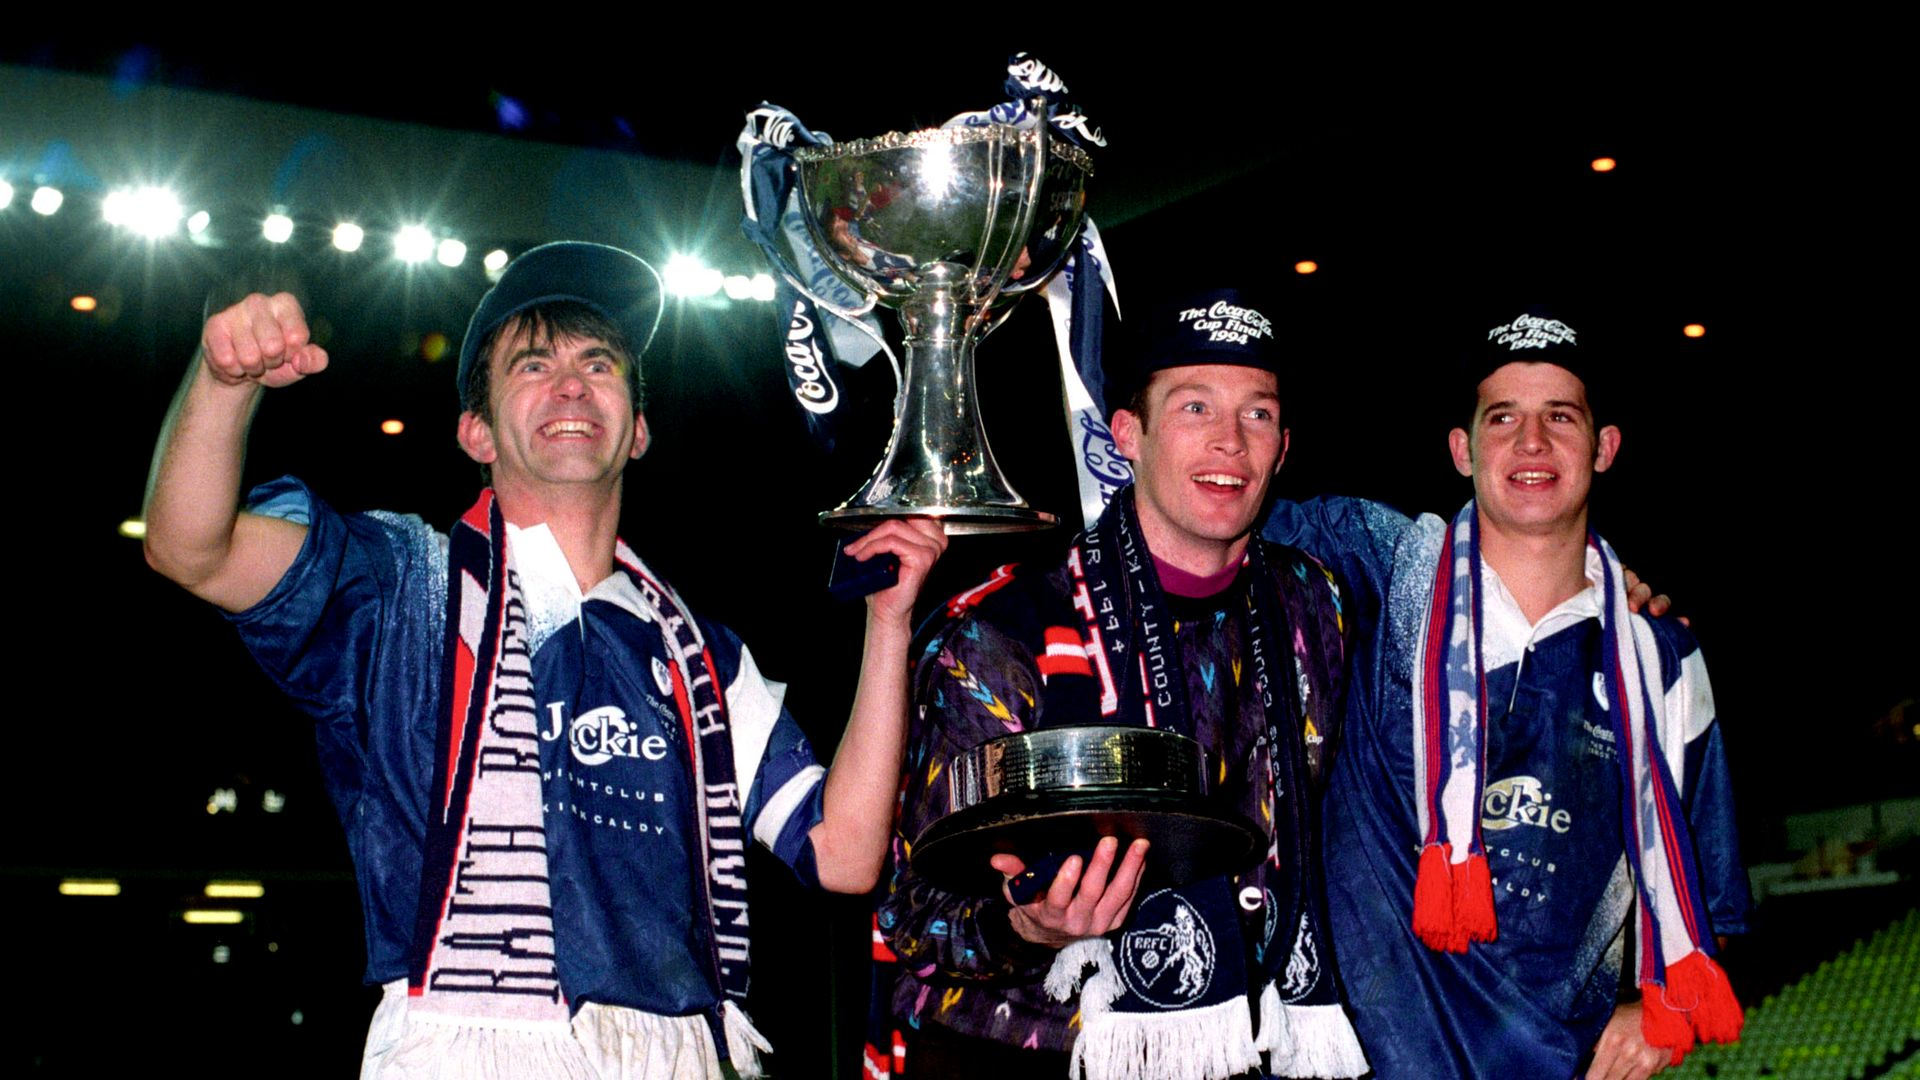 When Raith Rovers won the cup